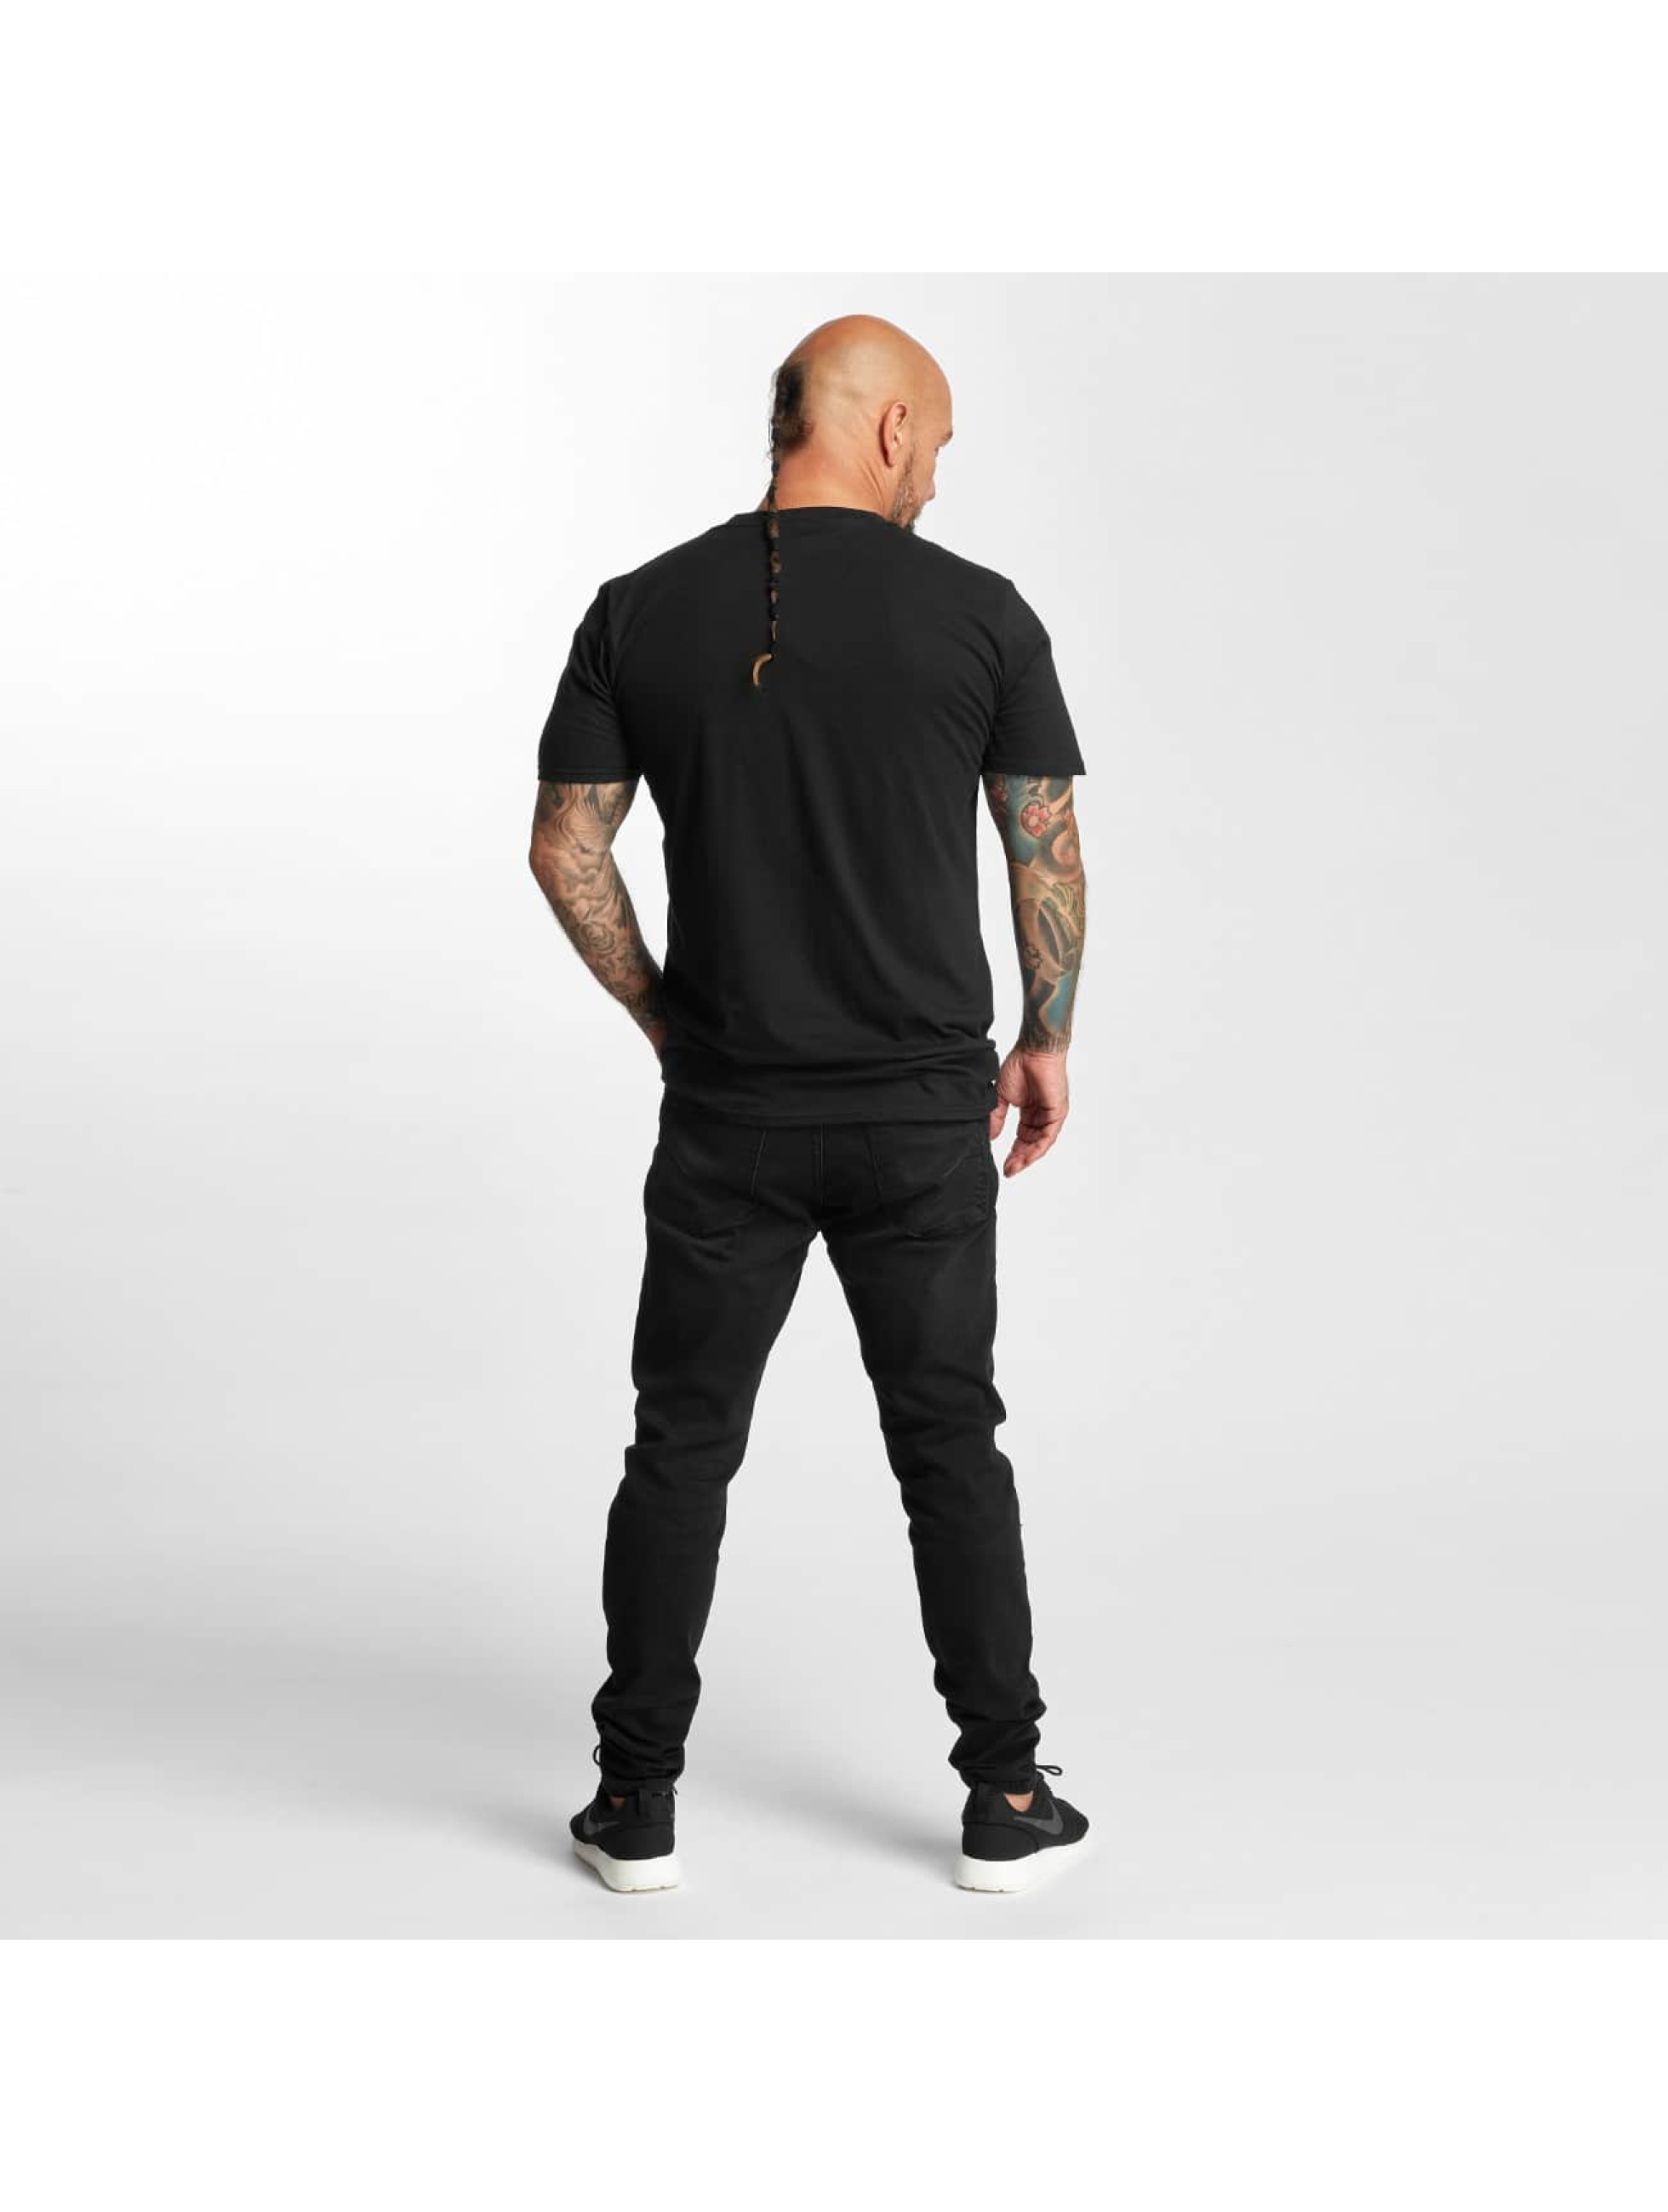 I Love Tattoo T-shirt Anker nero